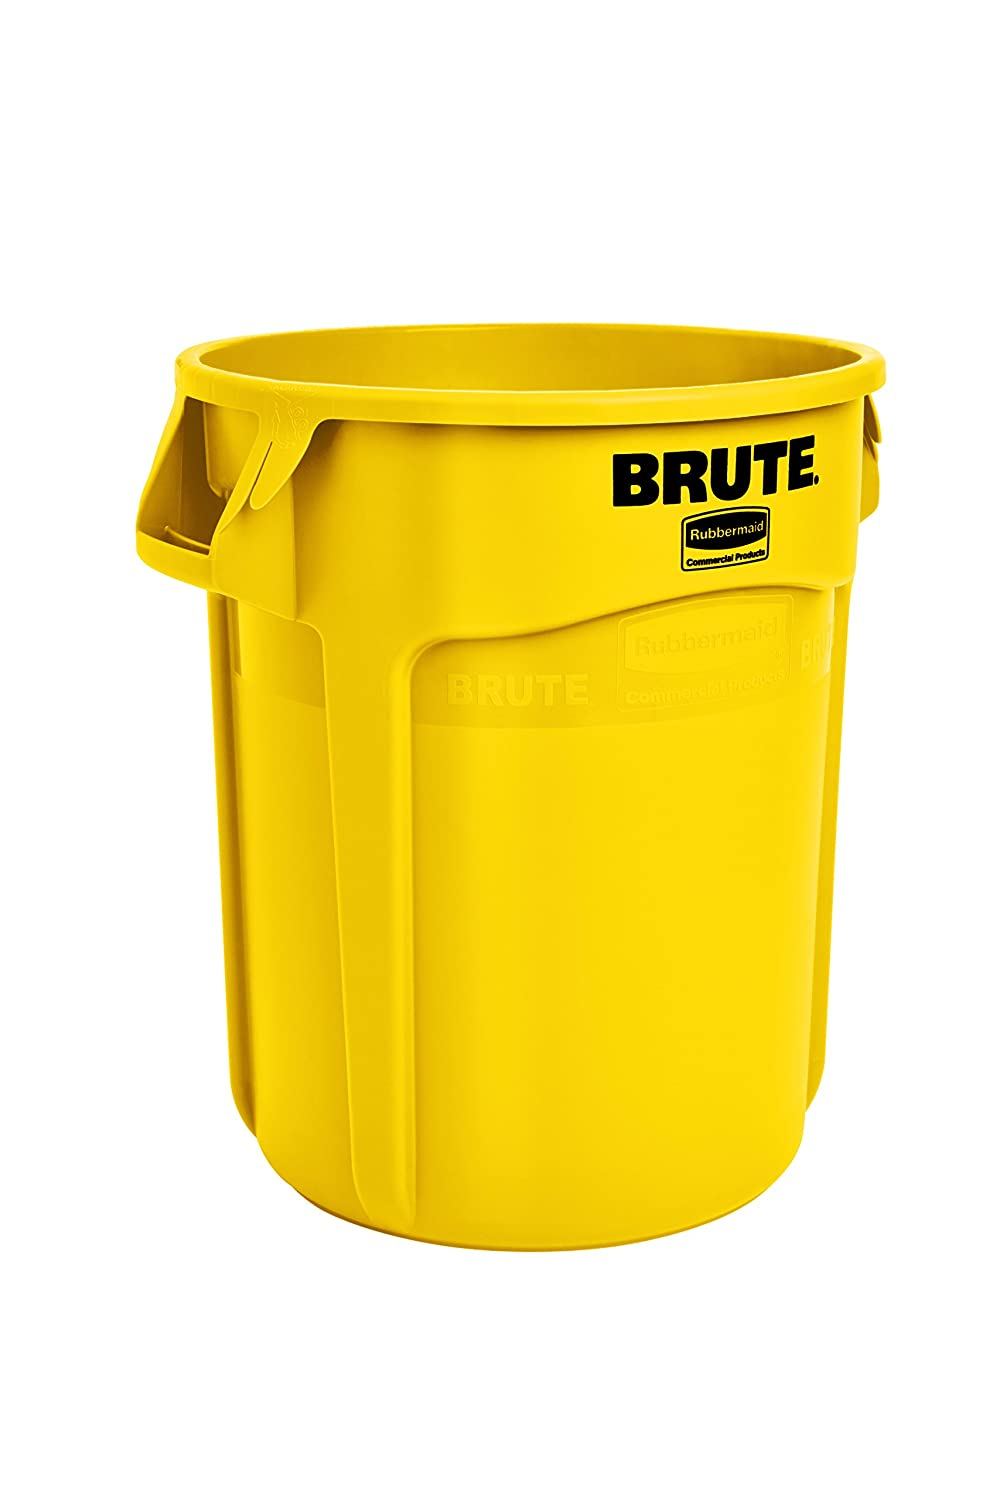 Rubbermaid Commercial FG262000YEL BRUTE Heavy-Duty Round Waste/Utility Container, 20-gallon, Yellow